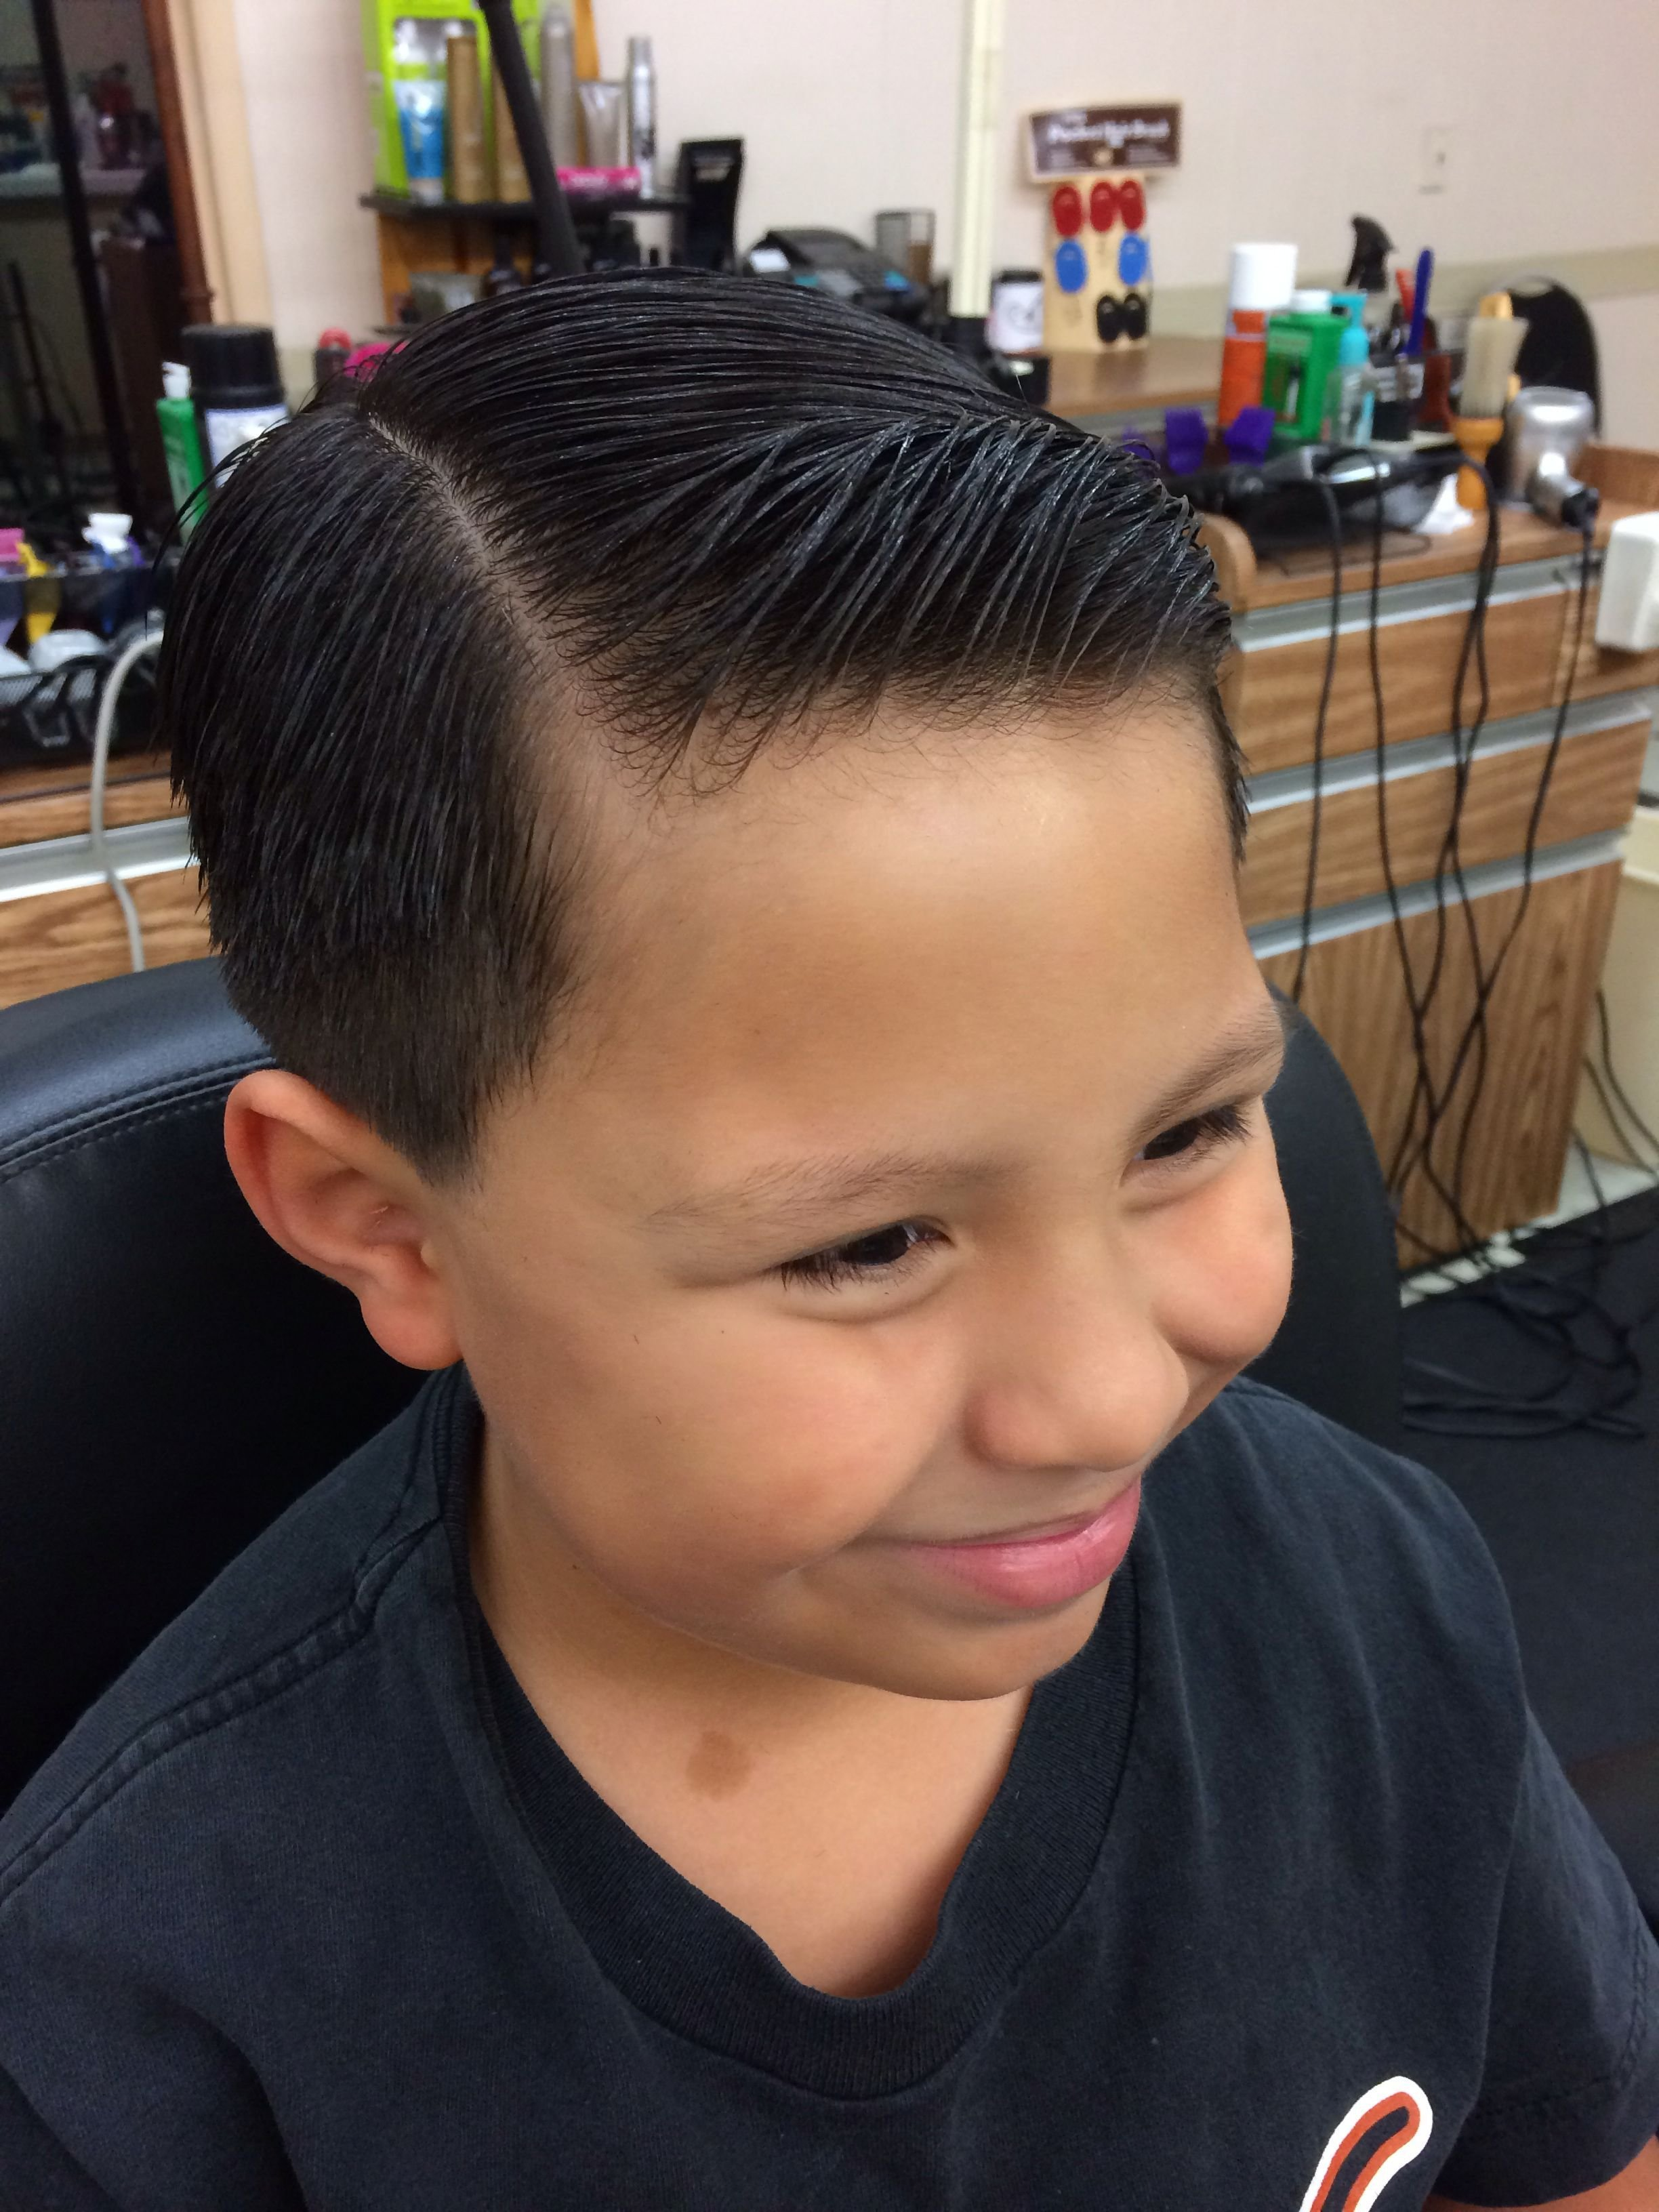 New Little Boys Haircut Barber Shop Hair Cuts Boy Ideas With Pictures Original 1024 x 768